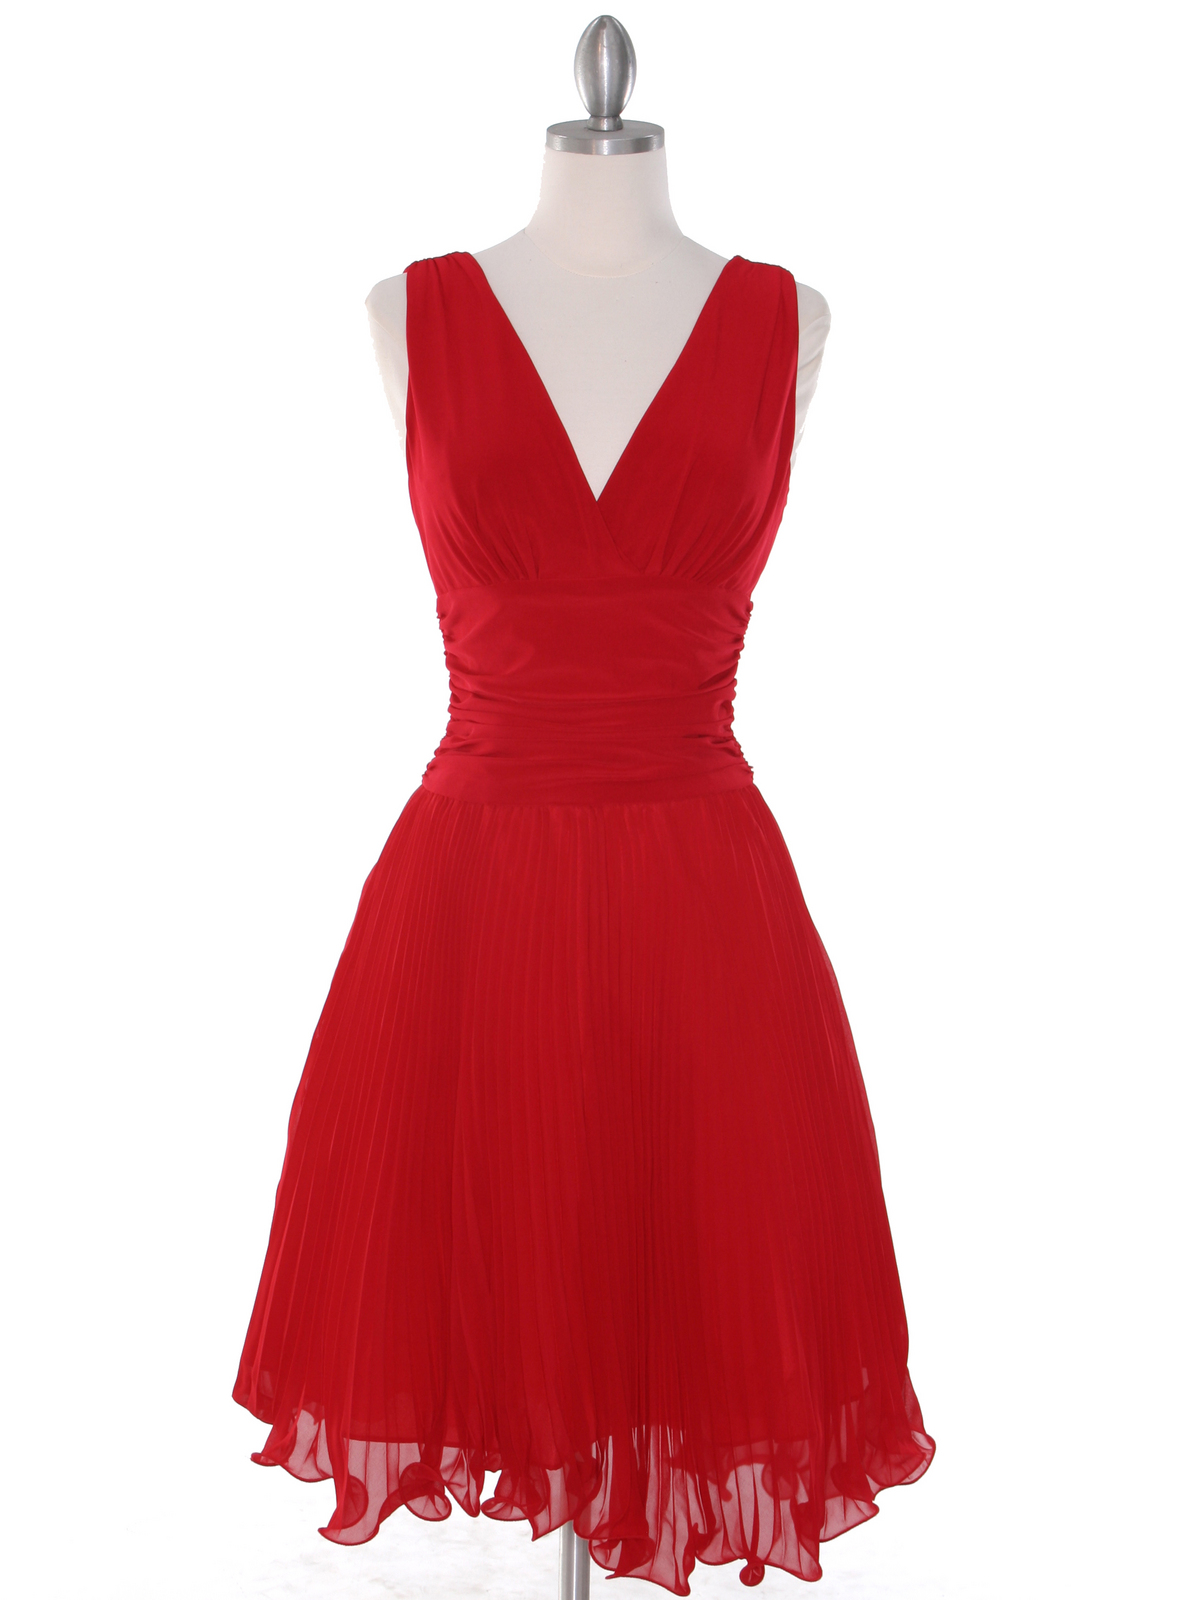 Ev3055 Pleated V Neck Tail Dress Red Front View Medium